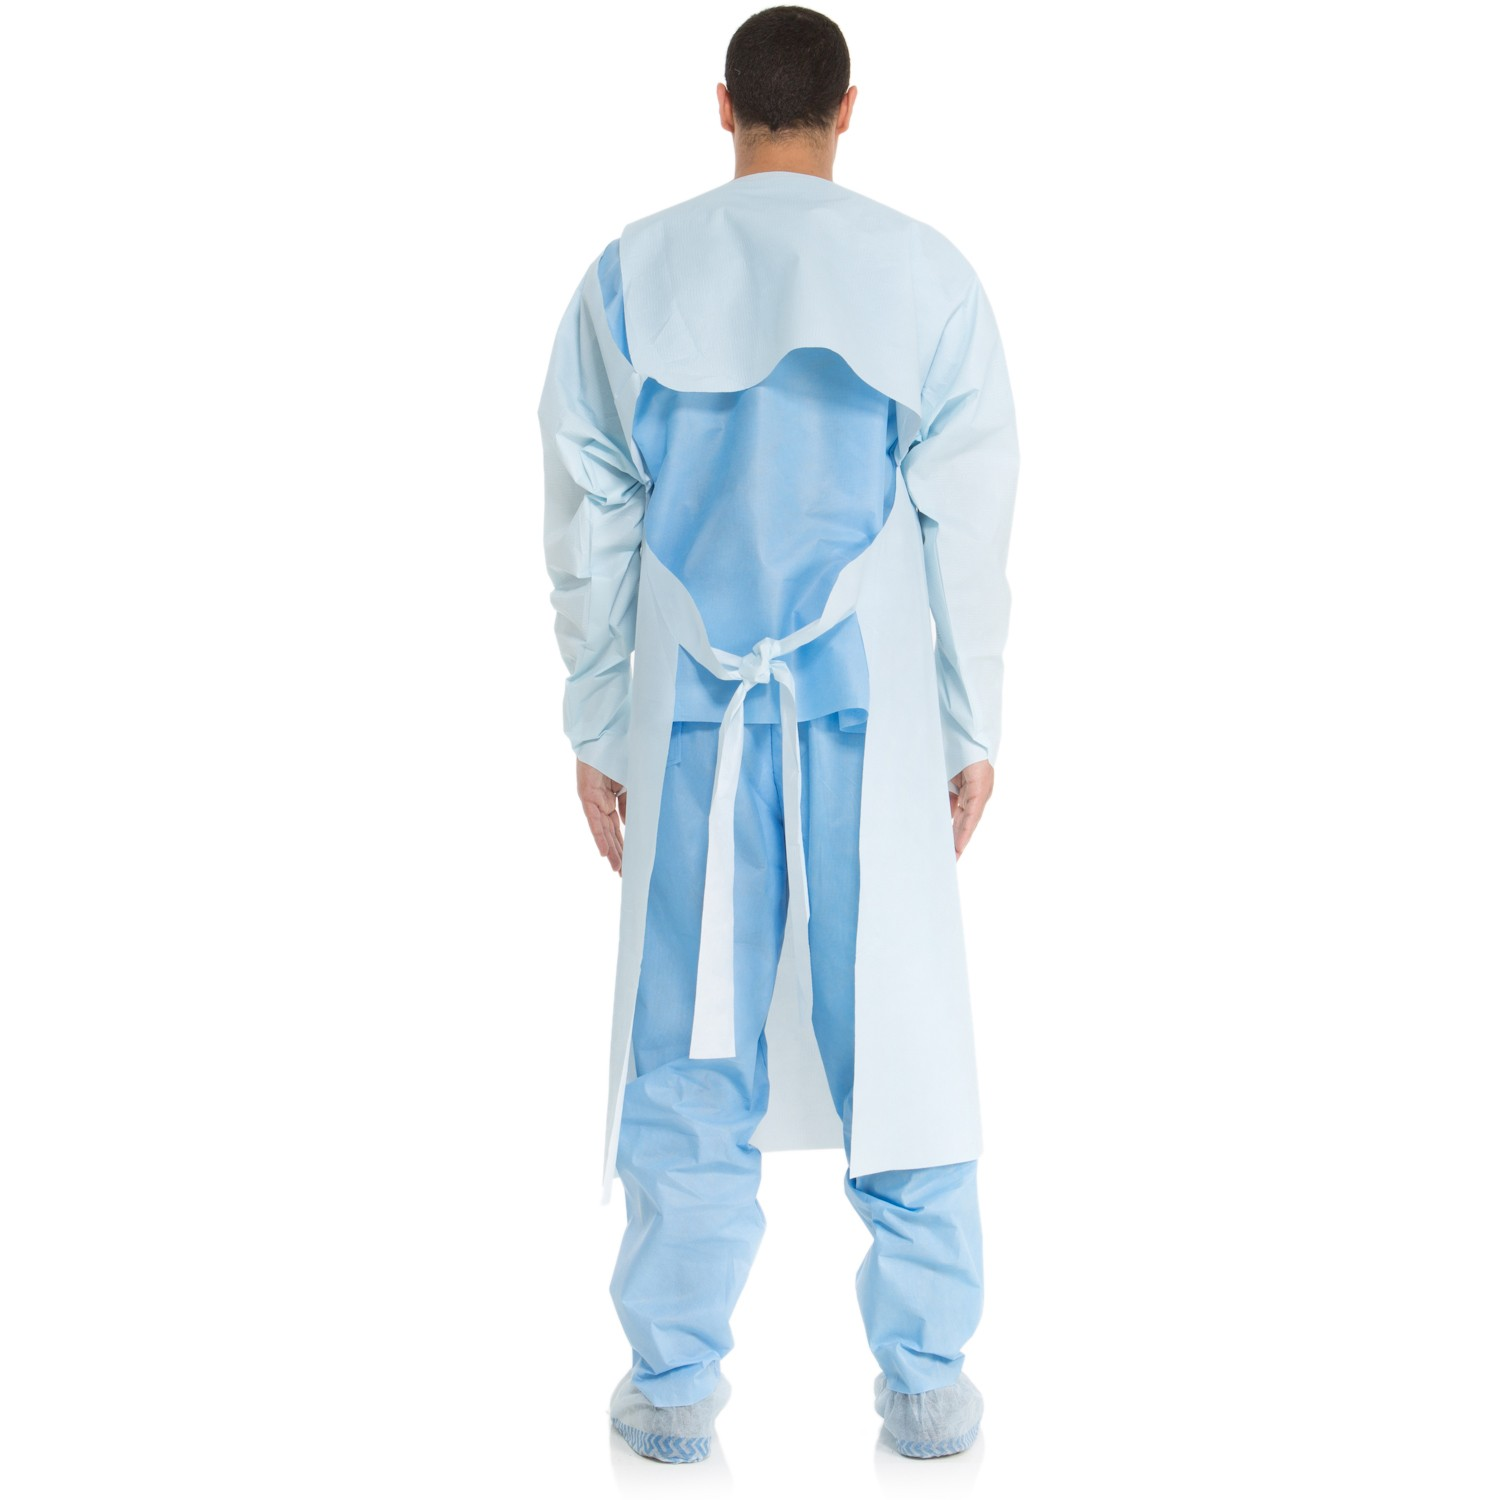 Impervious Comfort Gown Halyard Health